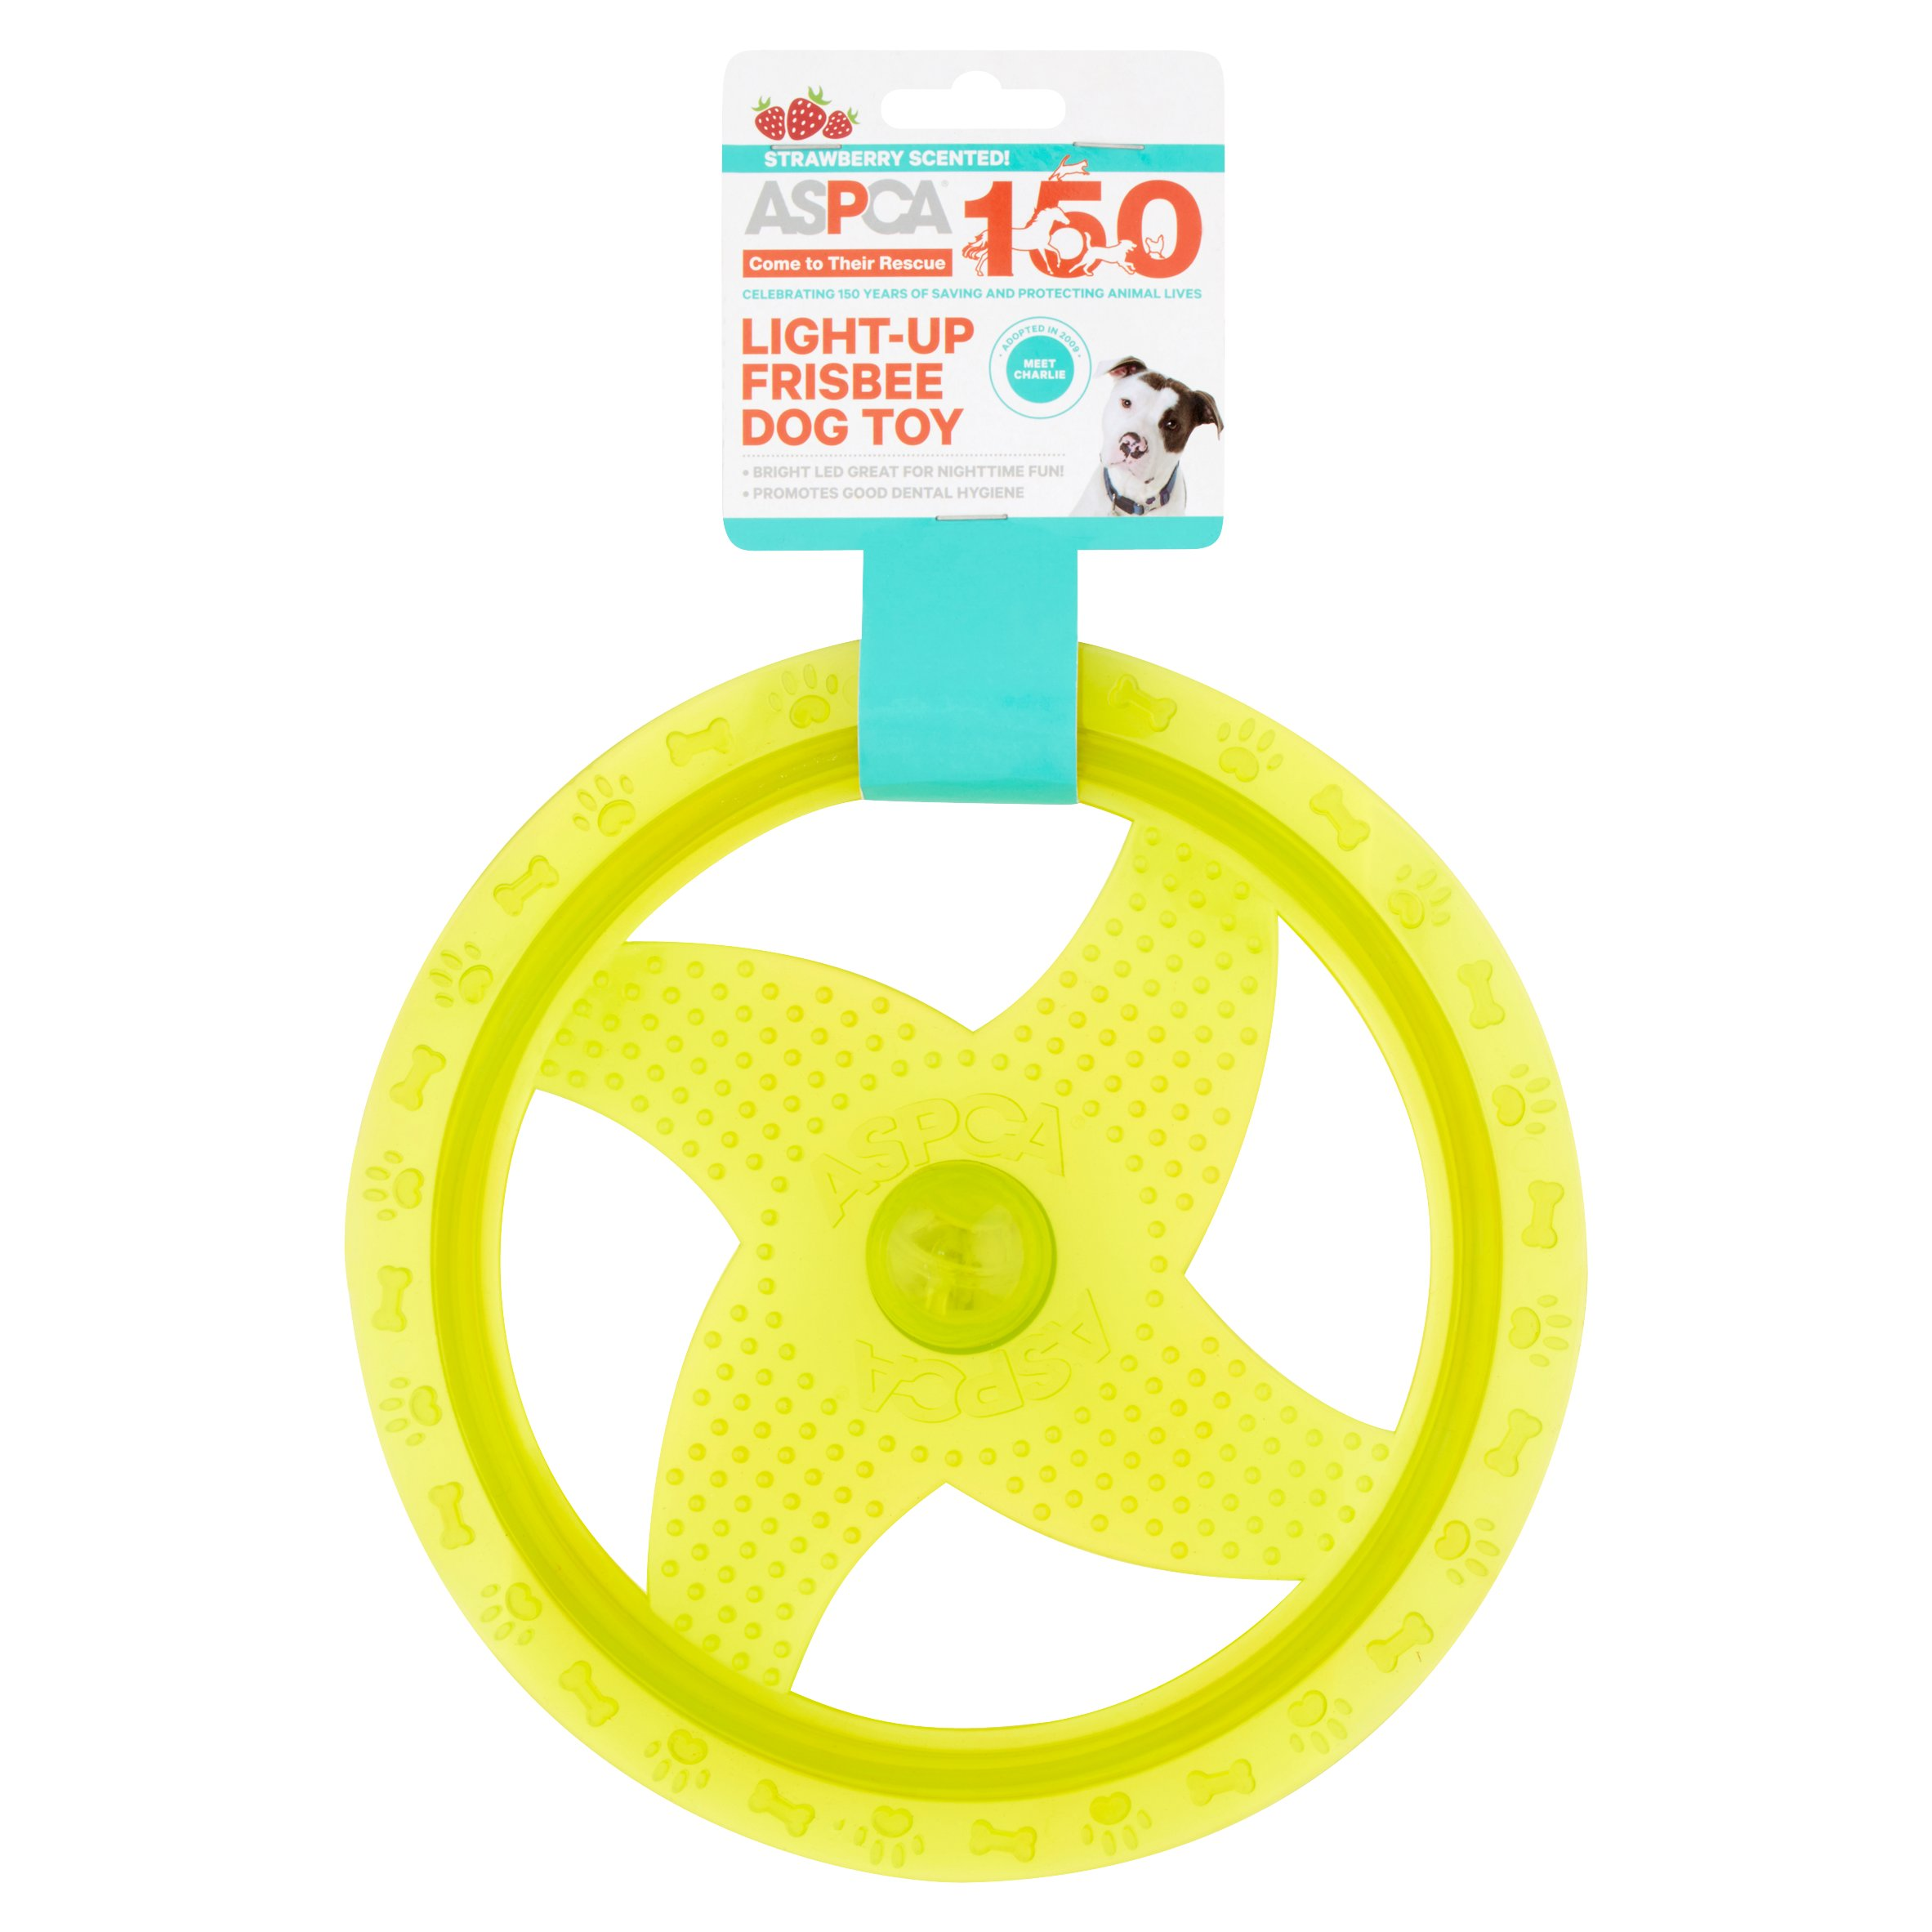 ASPCA Strawberry Scented! Blue Light-Up Frisbee Dog Toy